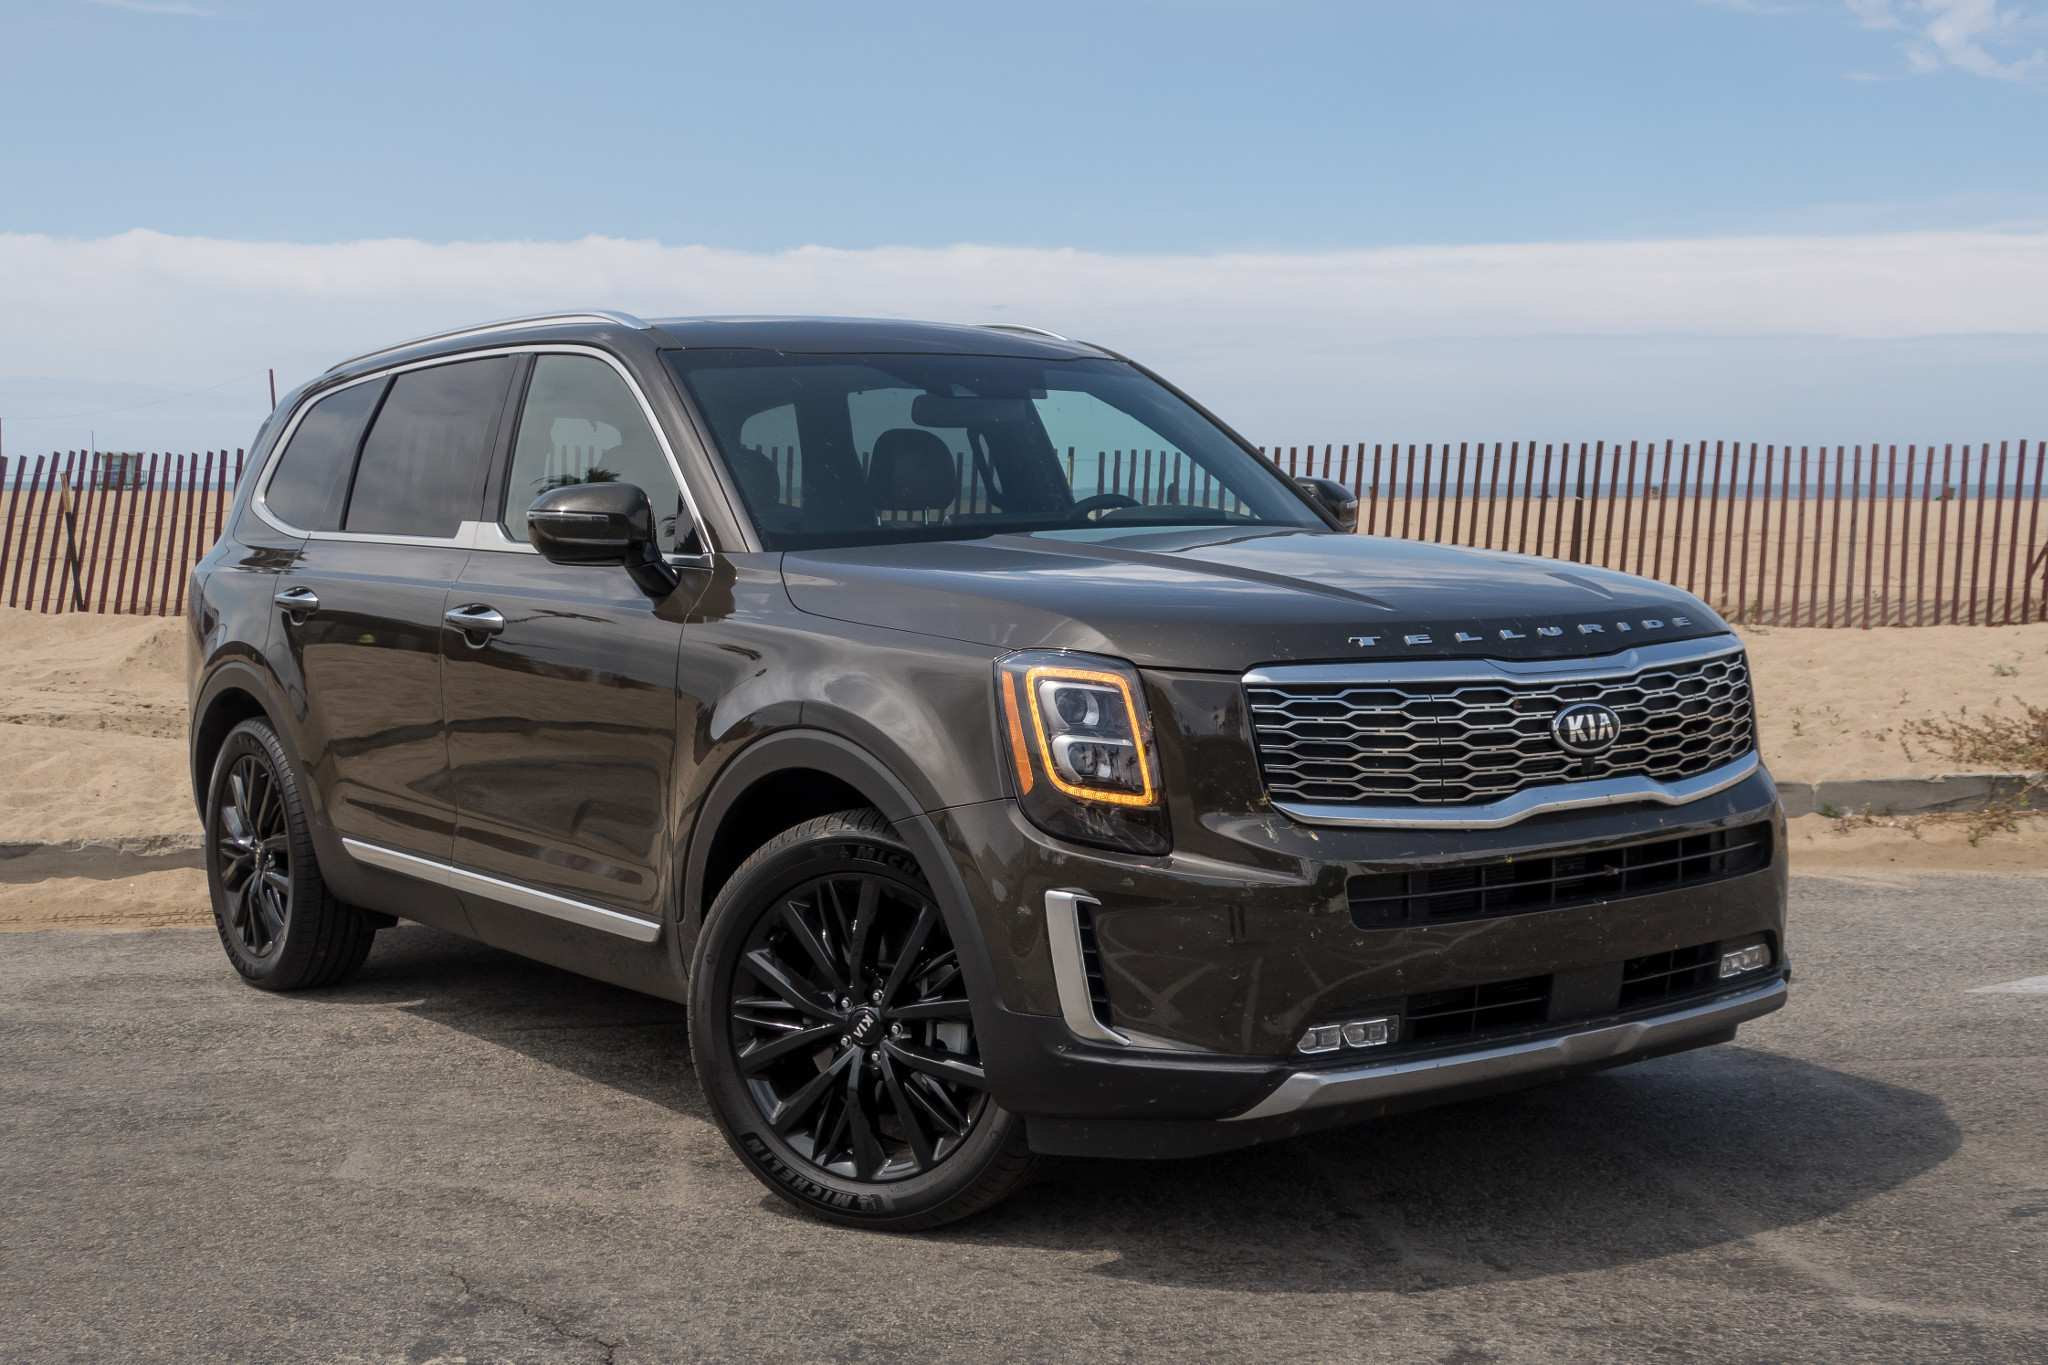 19 Gallery of Kia Telluride 2020 Specs for Kia Telluride 2020